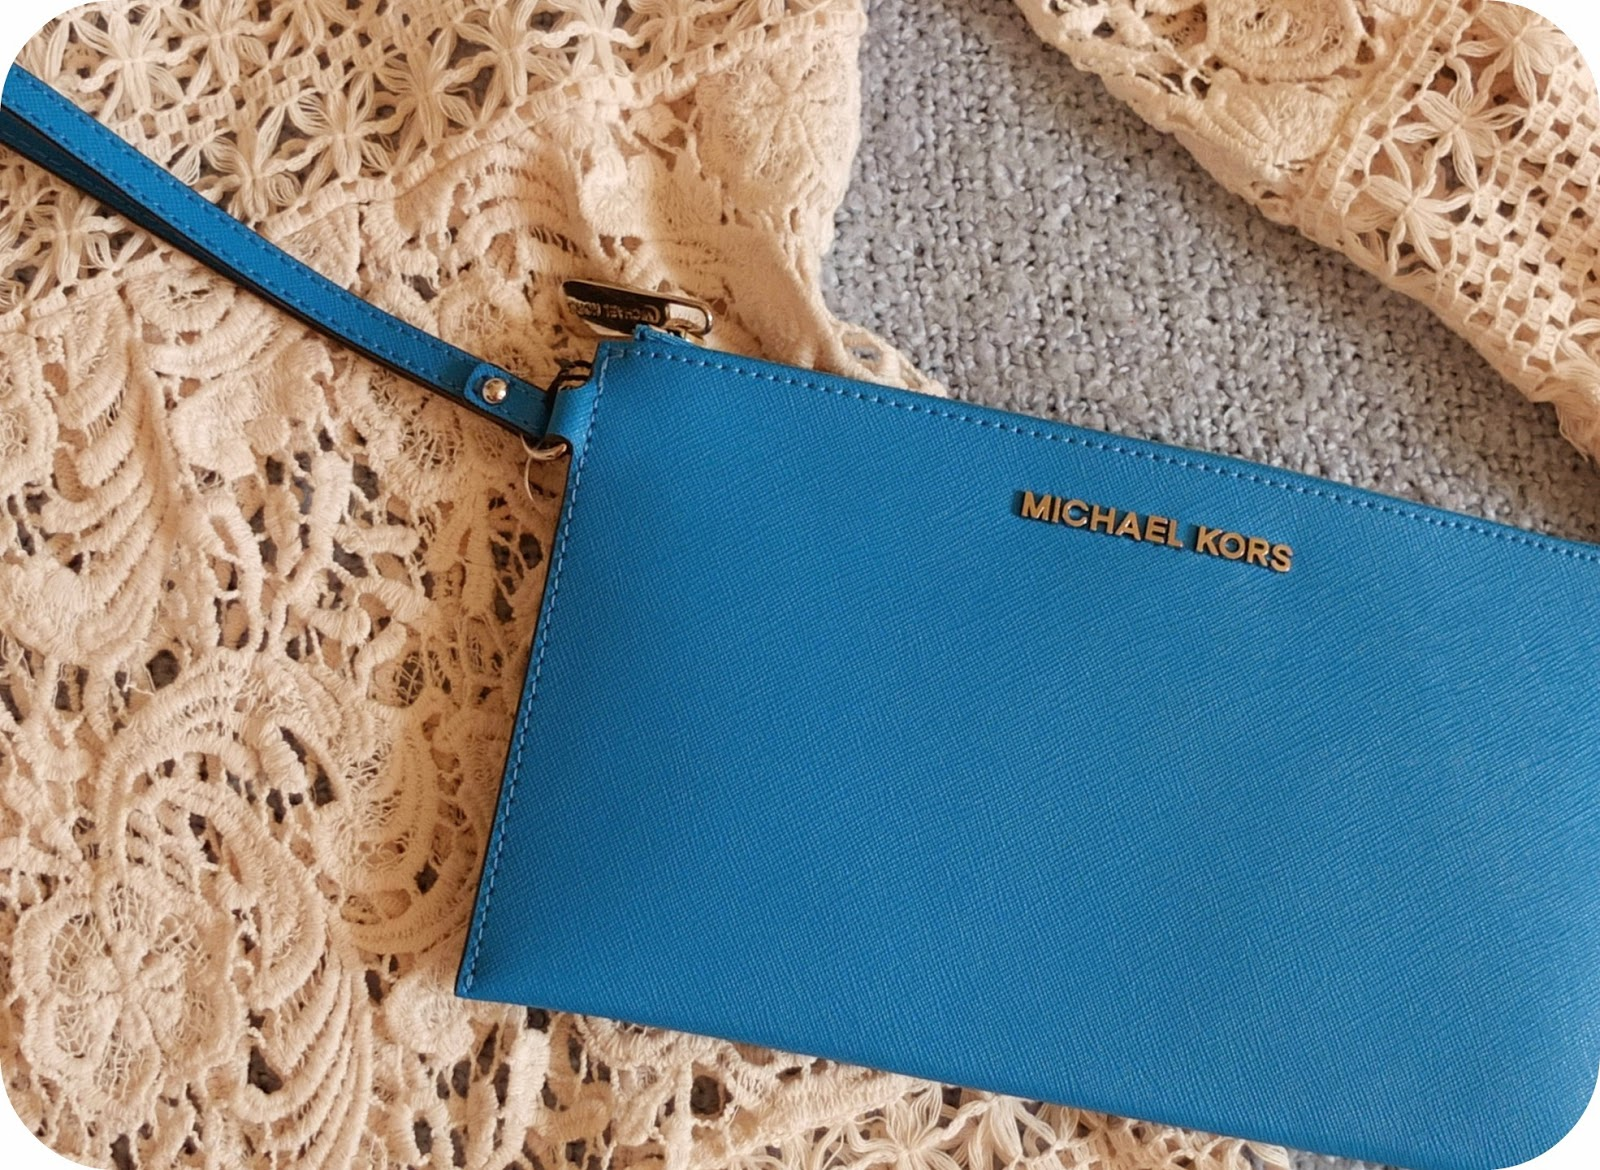 Michael Kors Jet Set Sky Blue Leather Clutch on British Fashion Blog